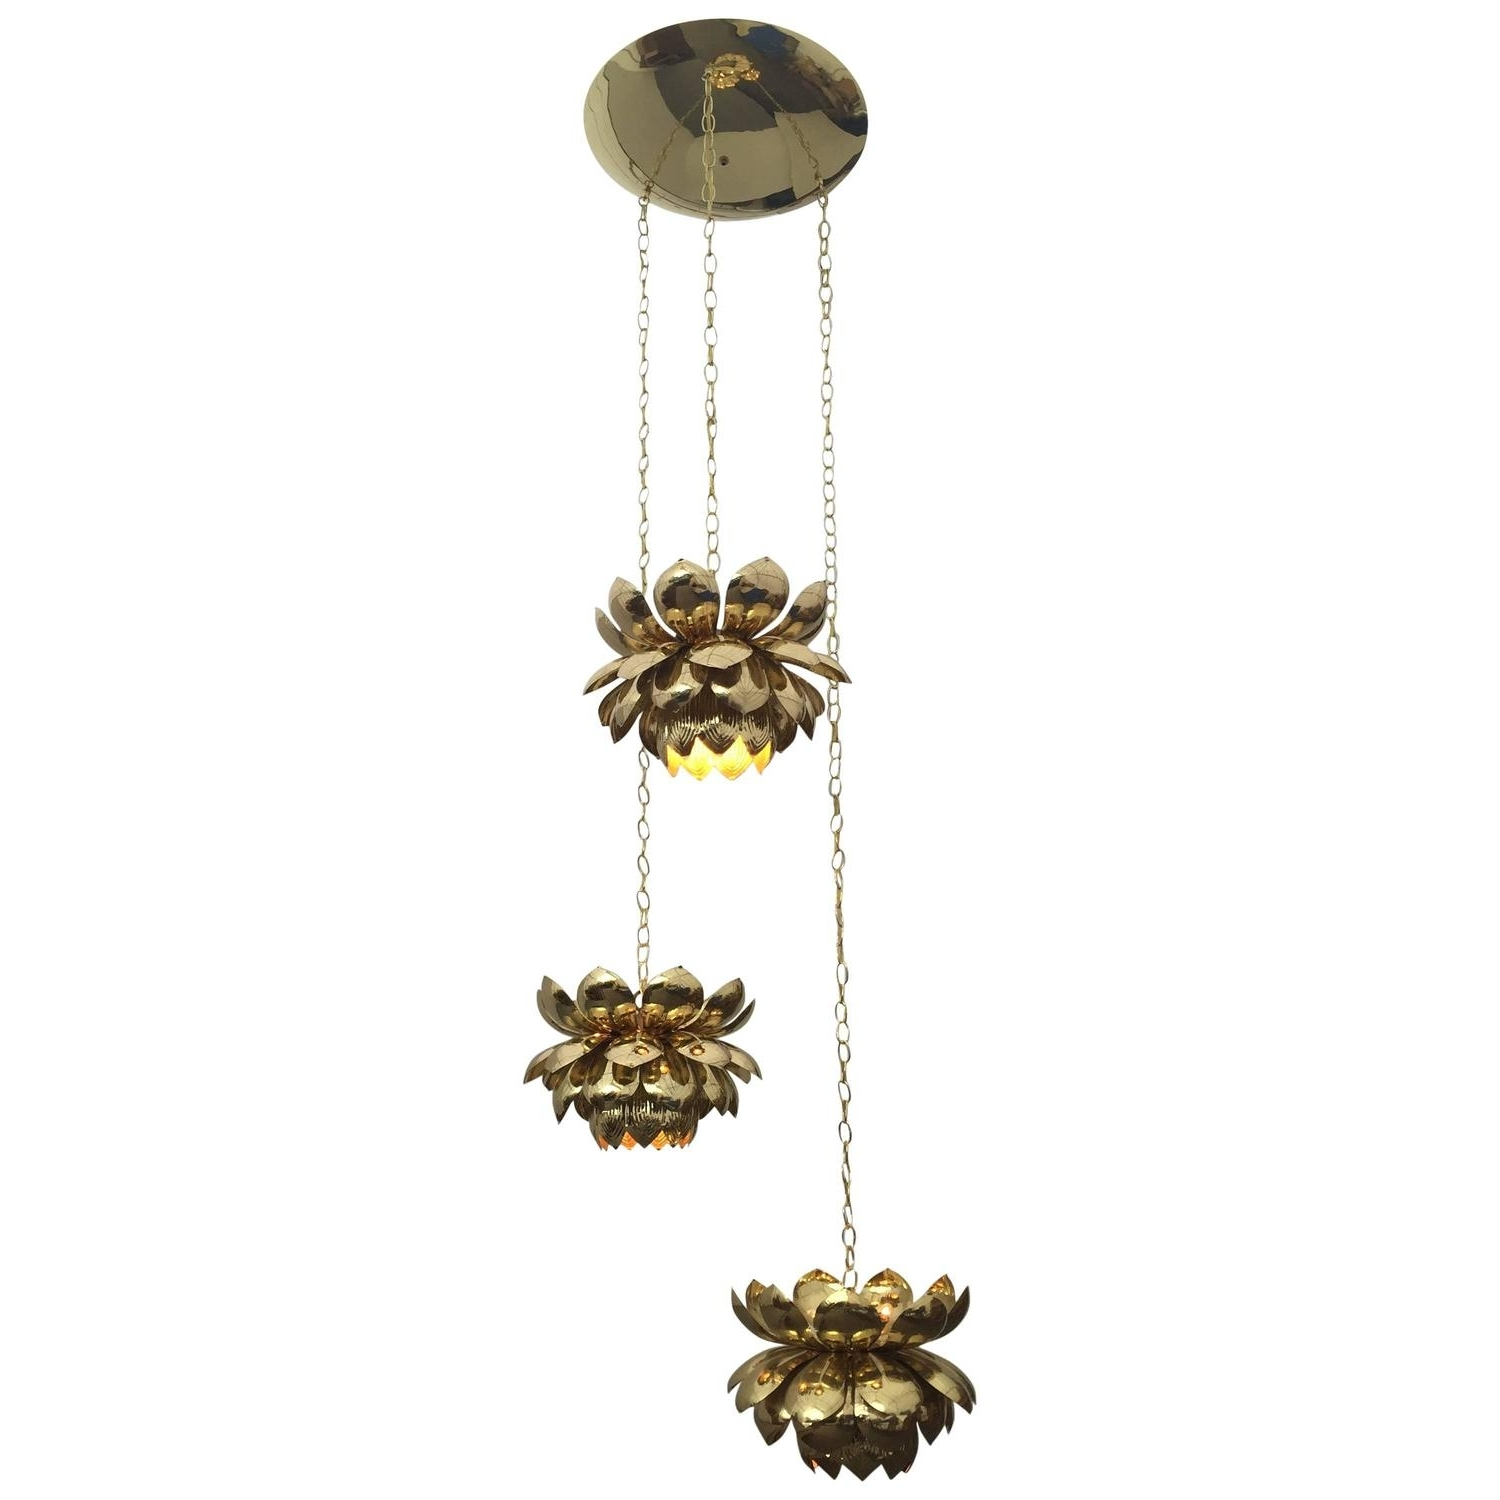 Famous Large Brass Chandelier Throughout Massive Feldman Brass Chandelier With Large Lotus Pendants For Sale (View 6 of 15)